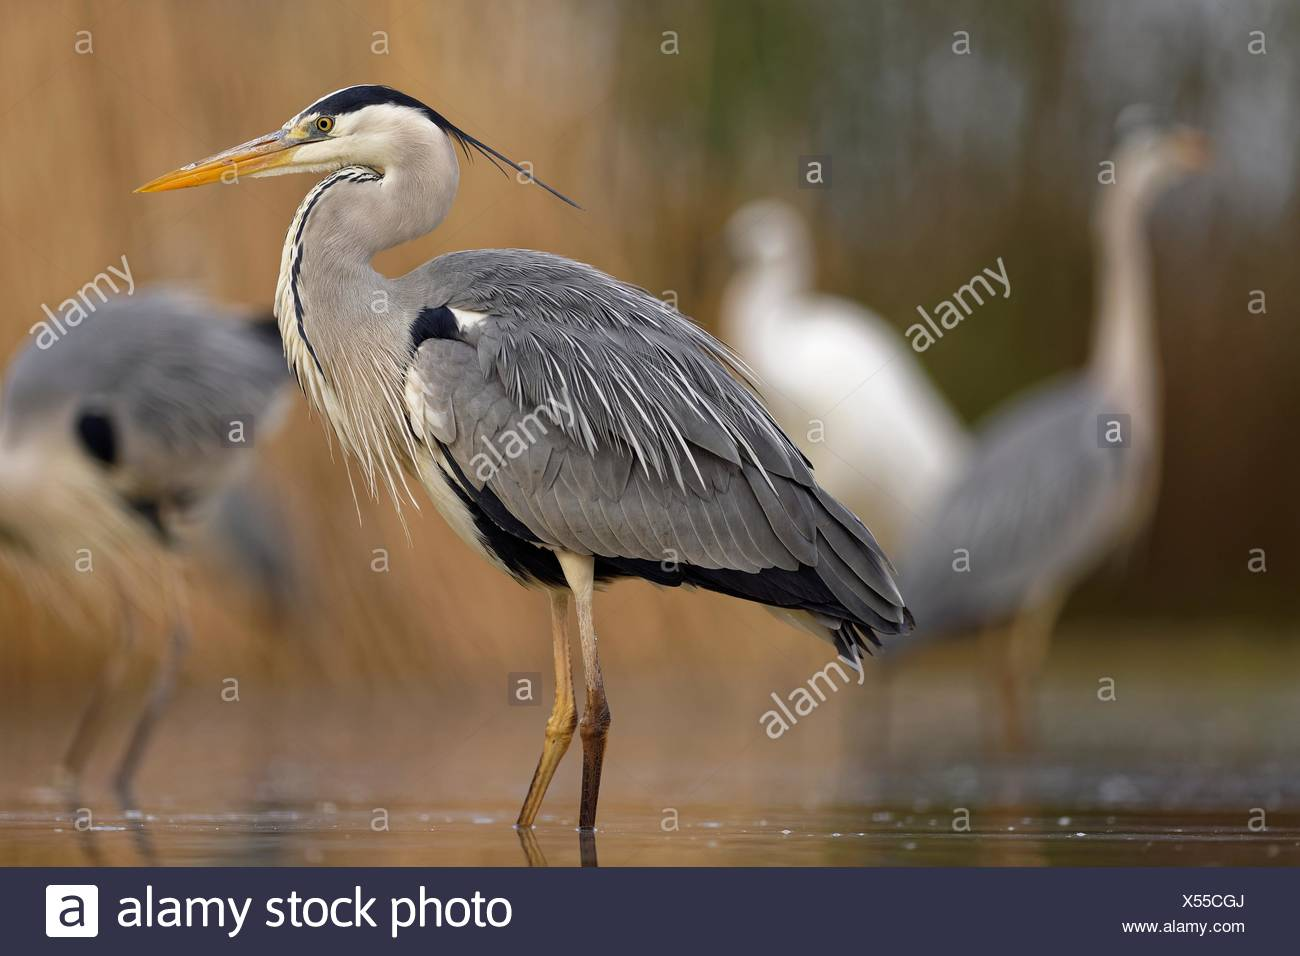 Grey heron (Ardea cinerea), stands in the water, National Park Kiskunsag, Hungary - Stock Image